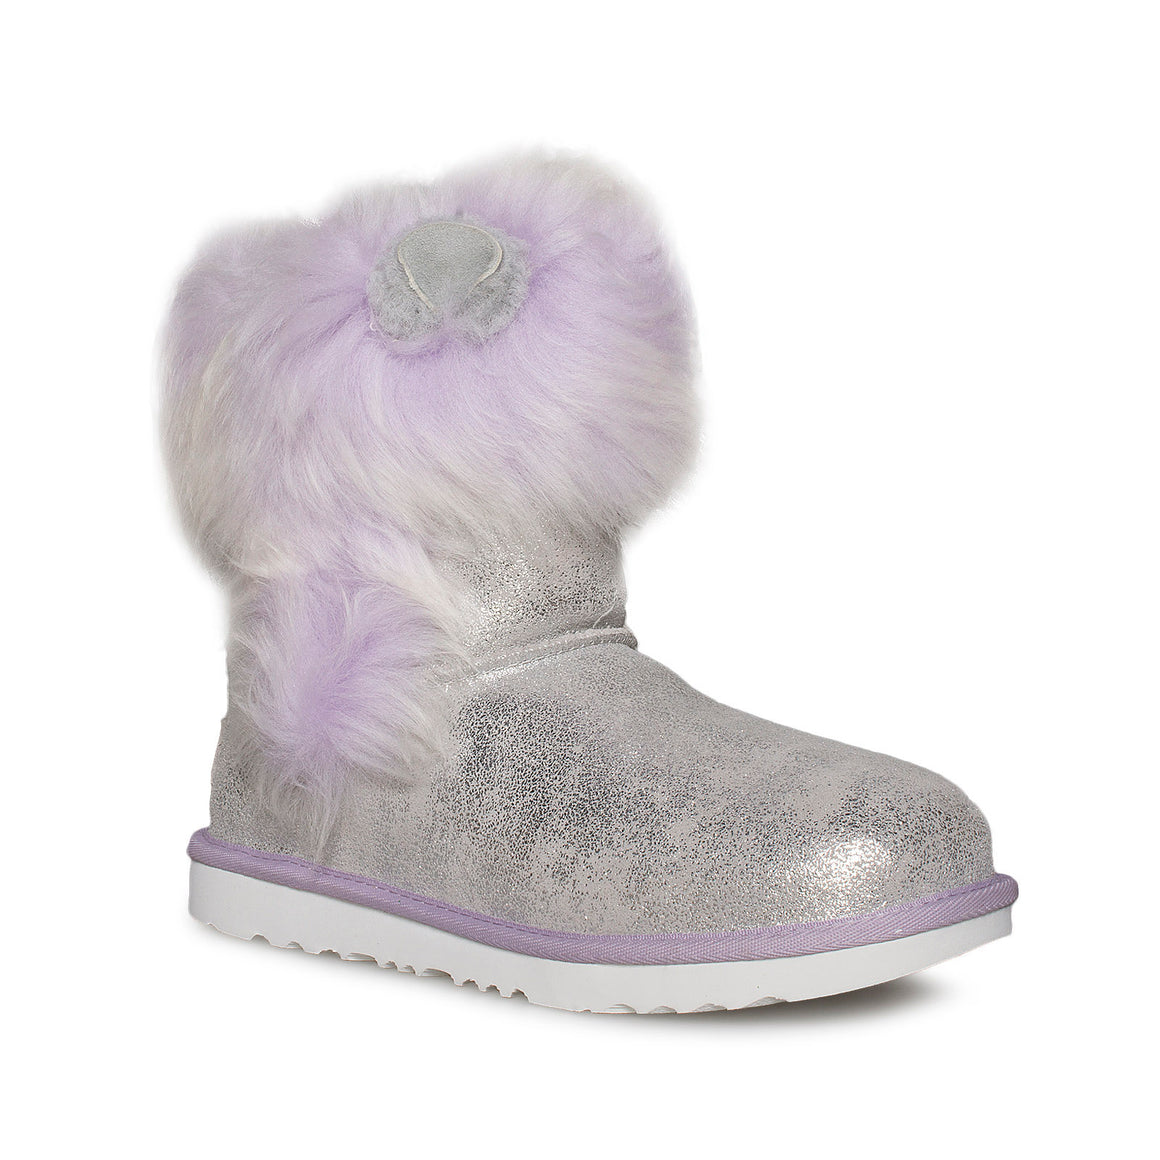 UGG Maizey Classic II Silver / Lavender Boots - Youth